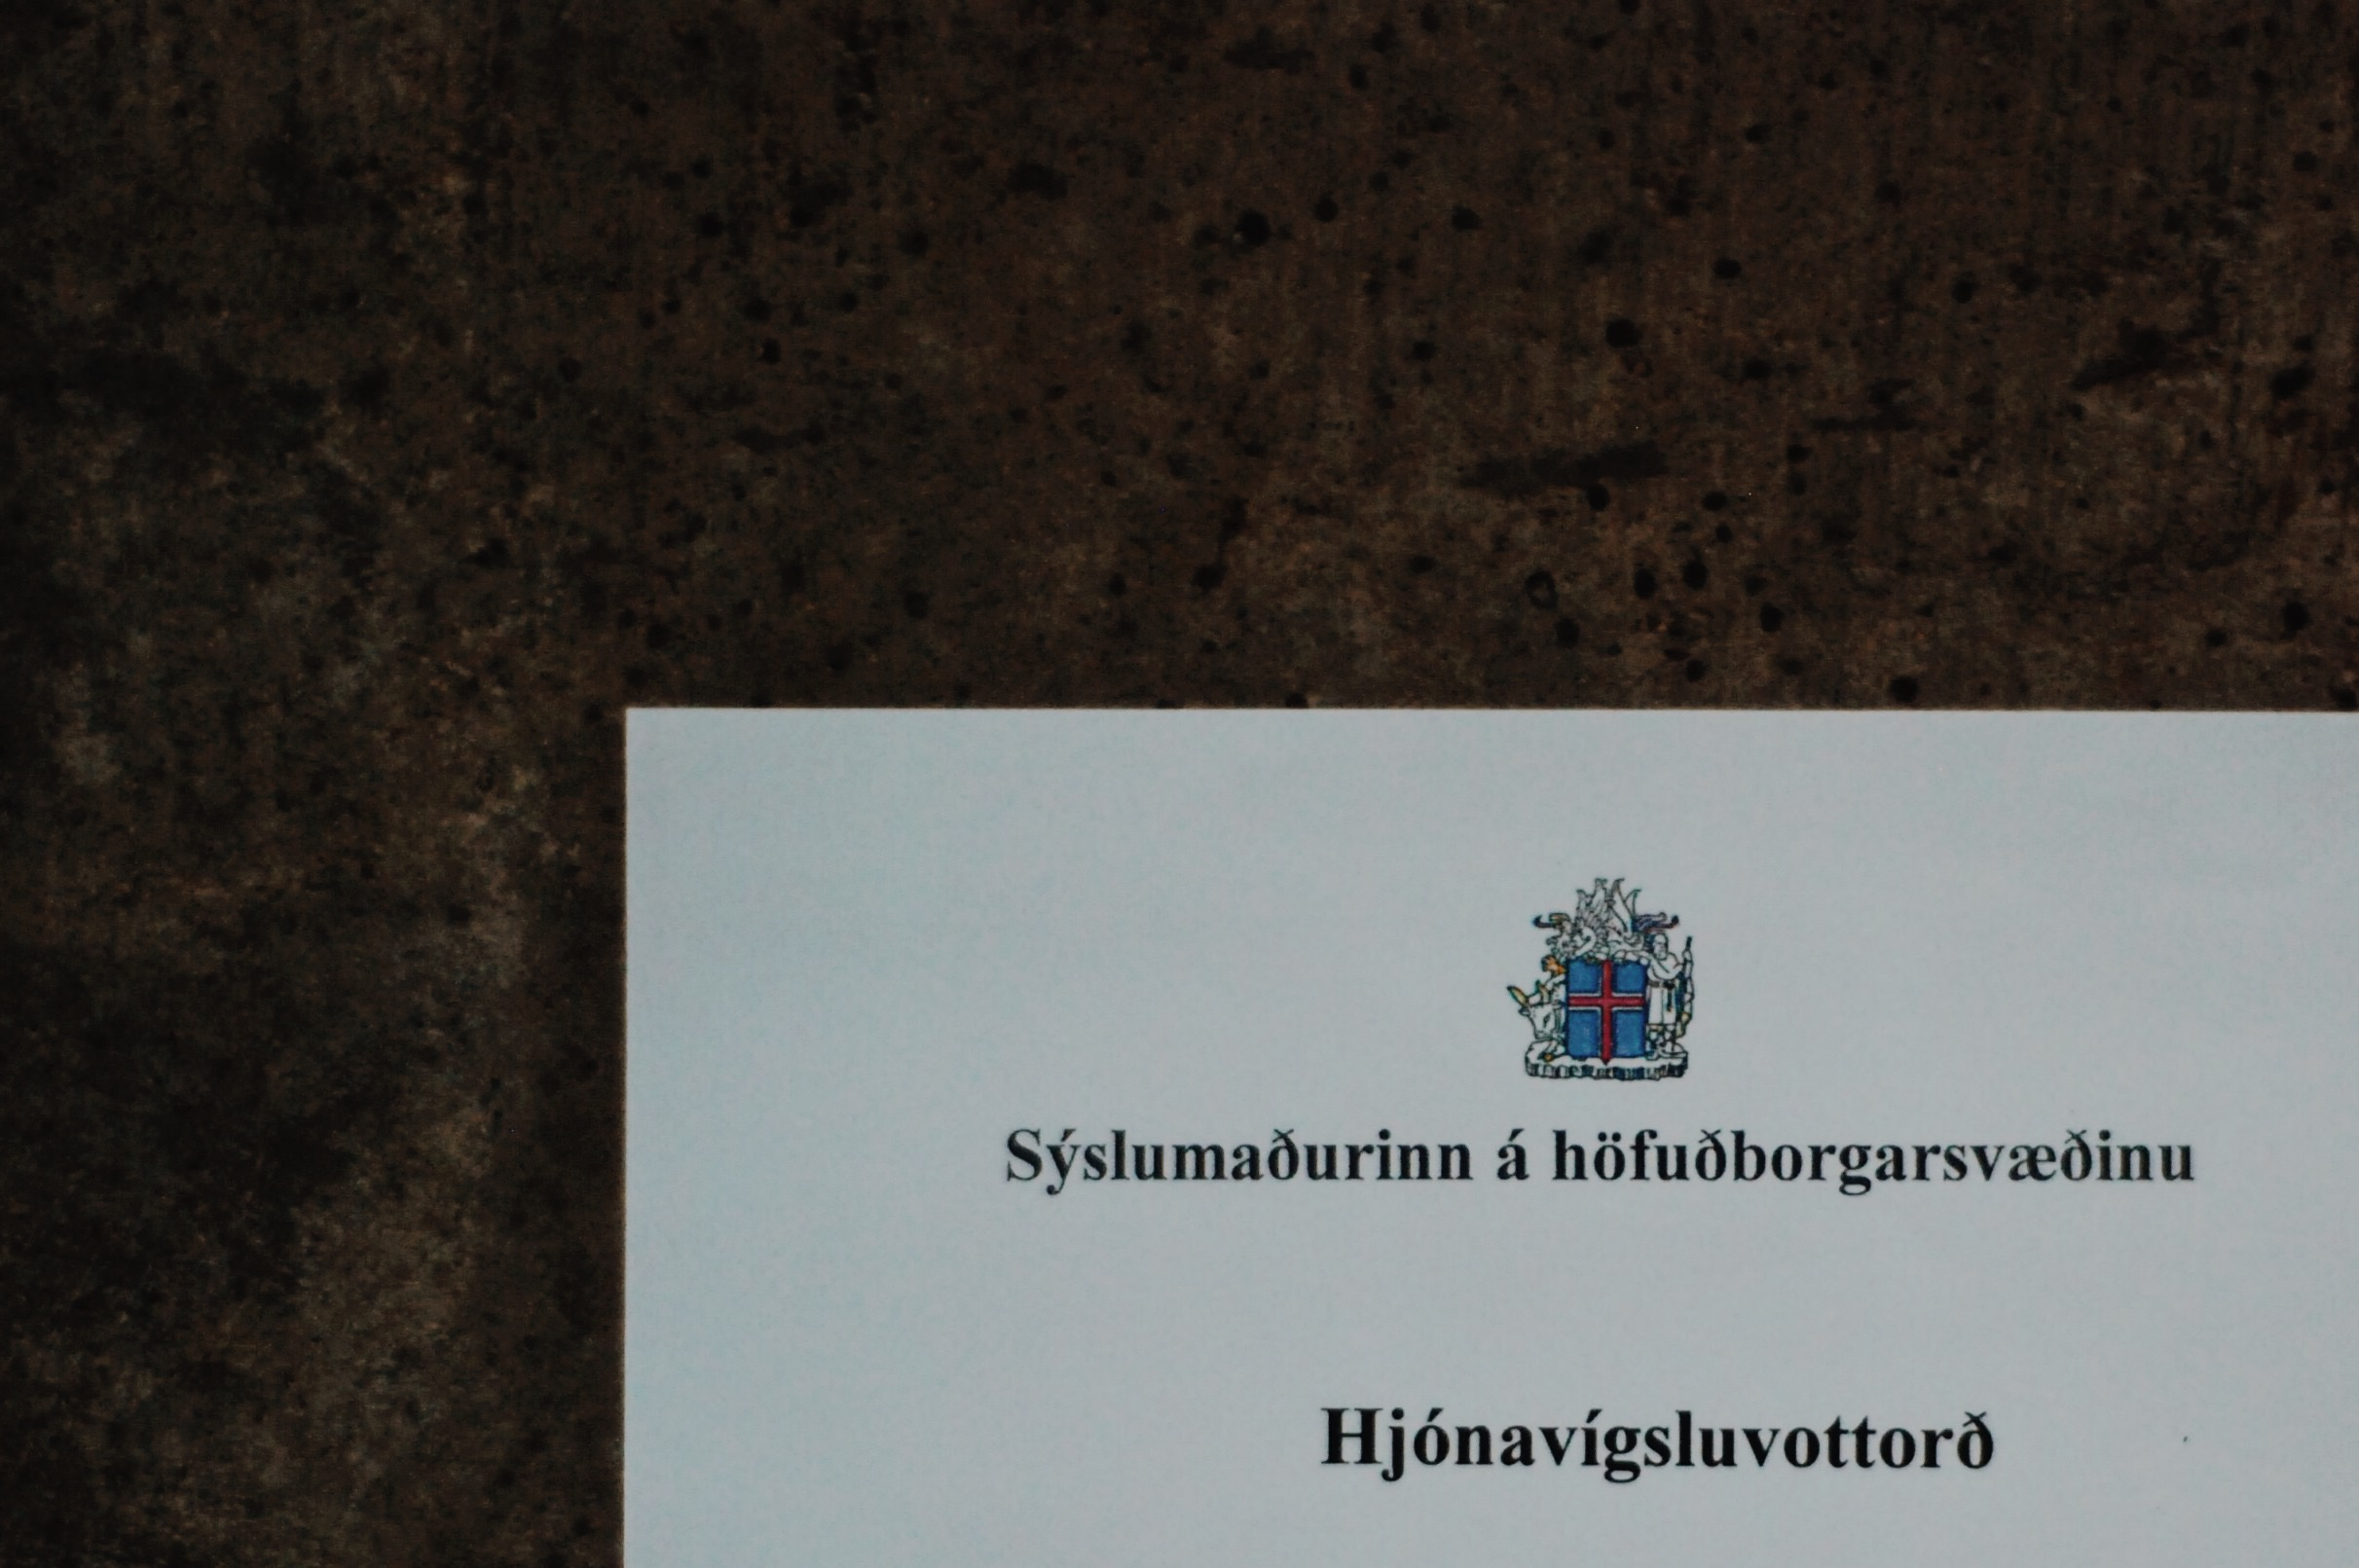 our icelandic marriage license (as photographed by me)